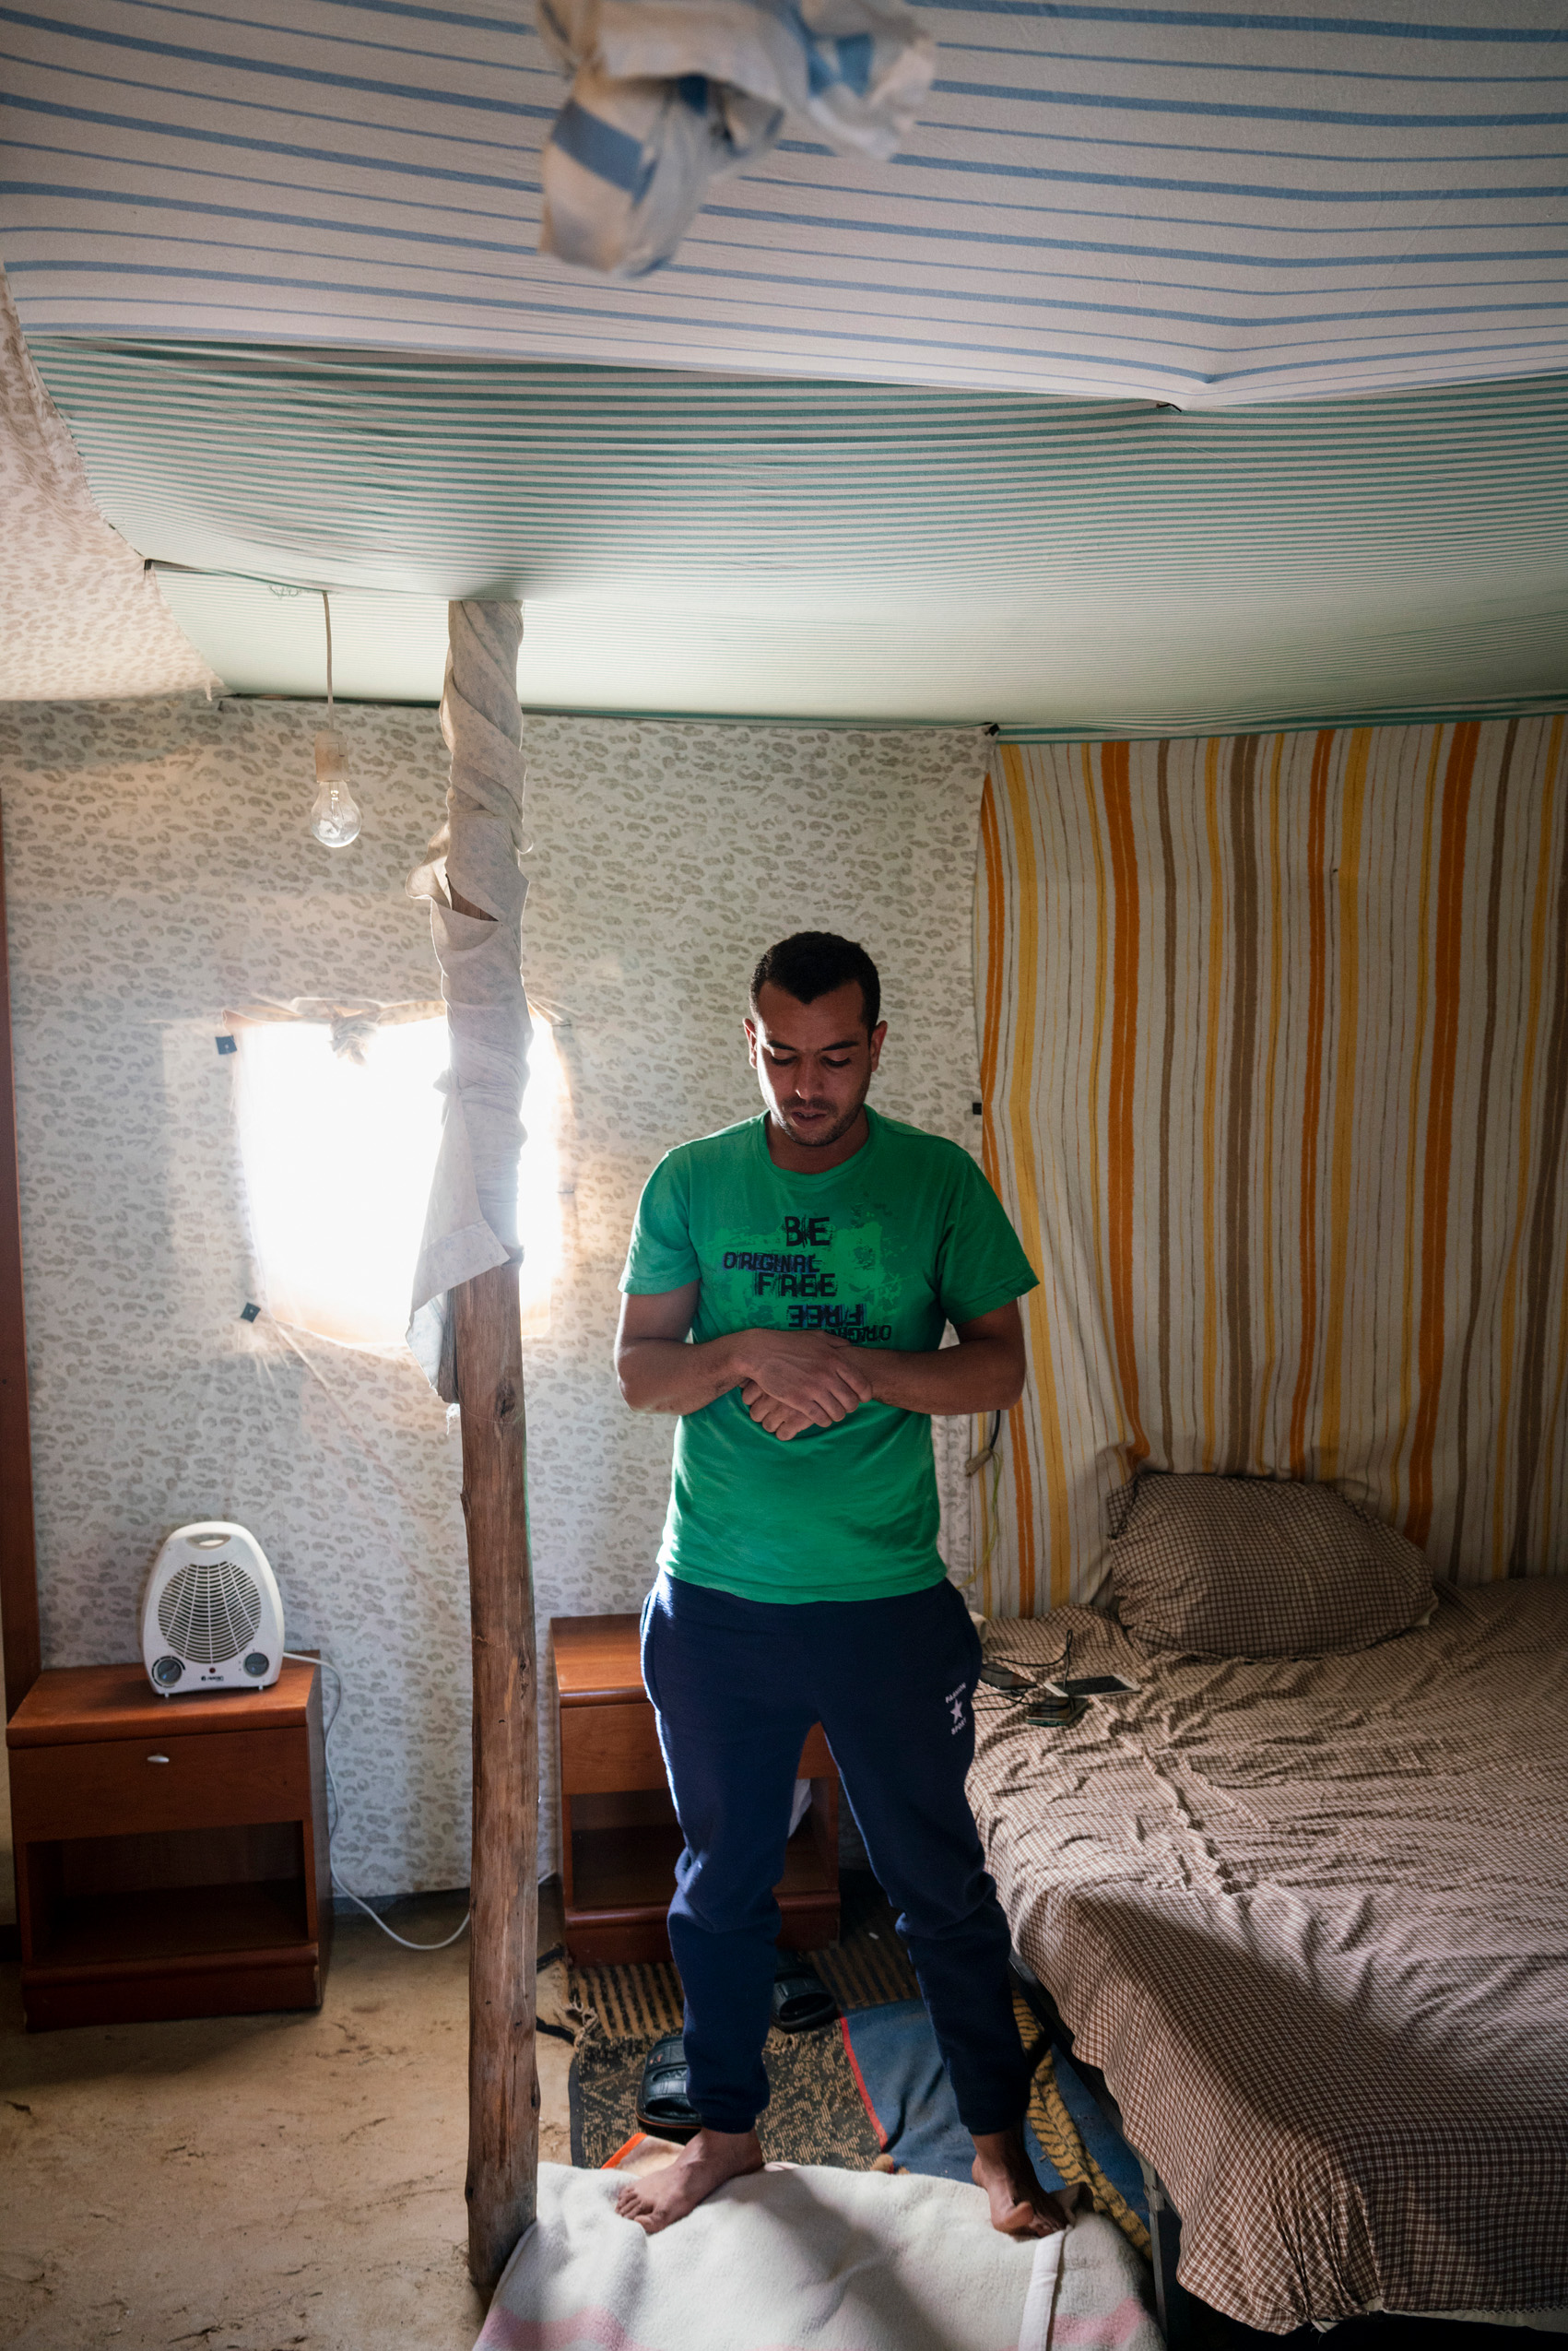 Ahmedi is a 32-year old Moroccan electrician who lived in Italy for 10 years before coming to Spain 3 years ago. He is praying in his self-constructed house made of plastic sheets, Spain.